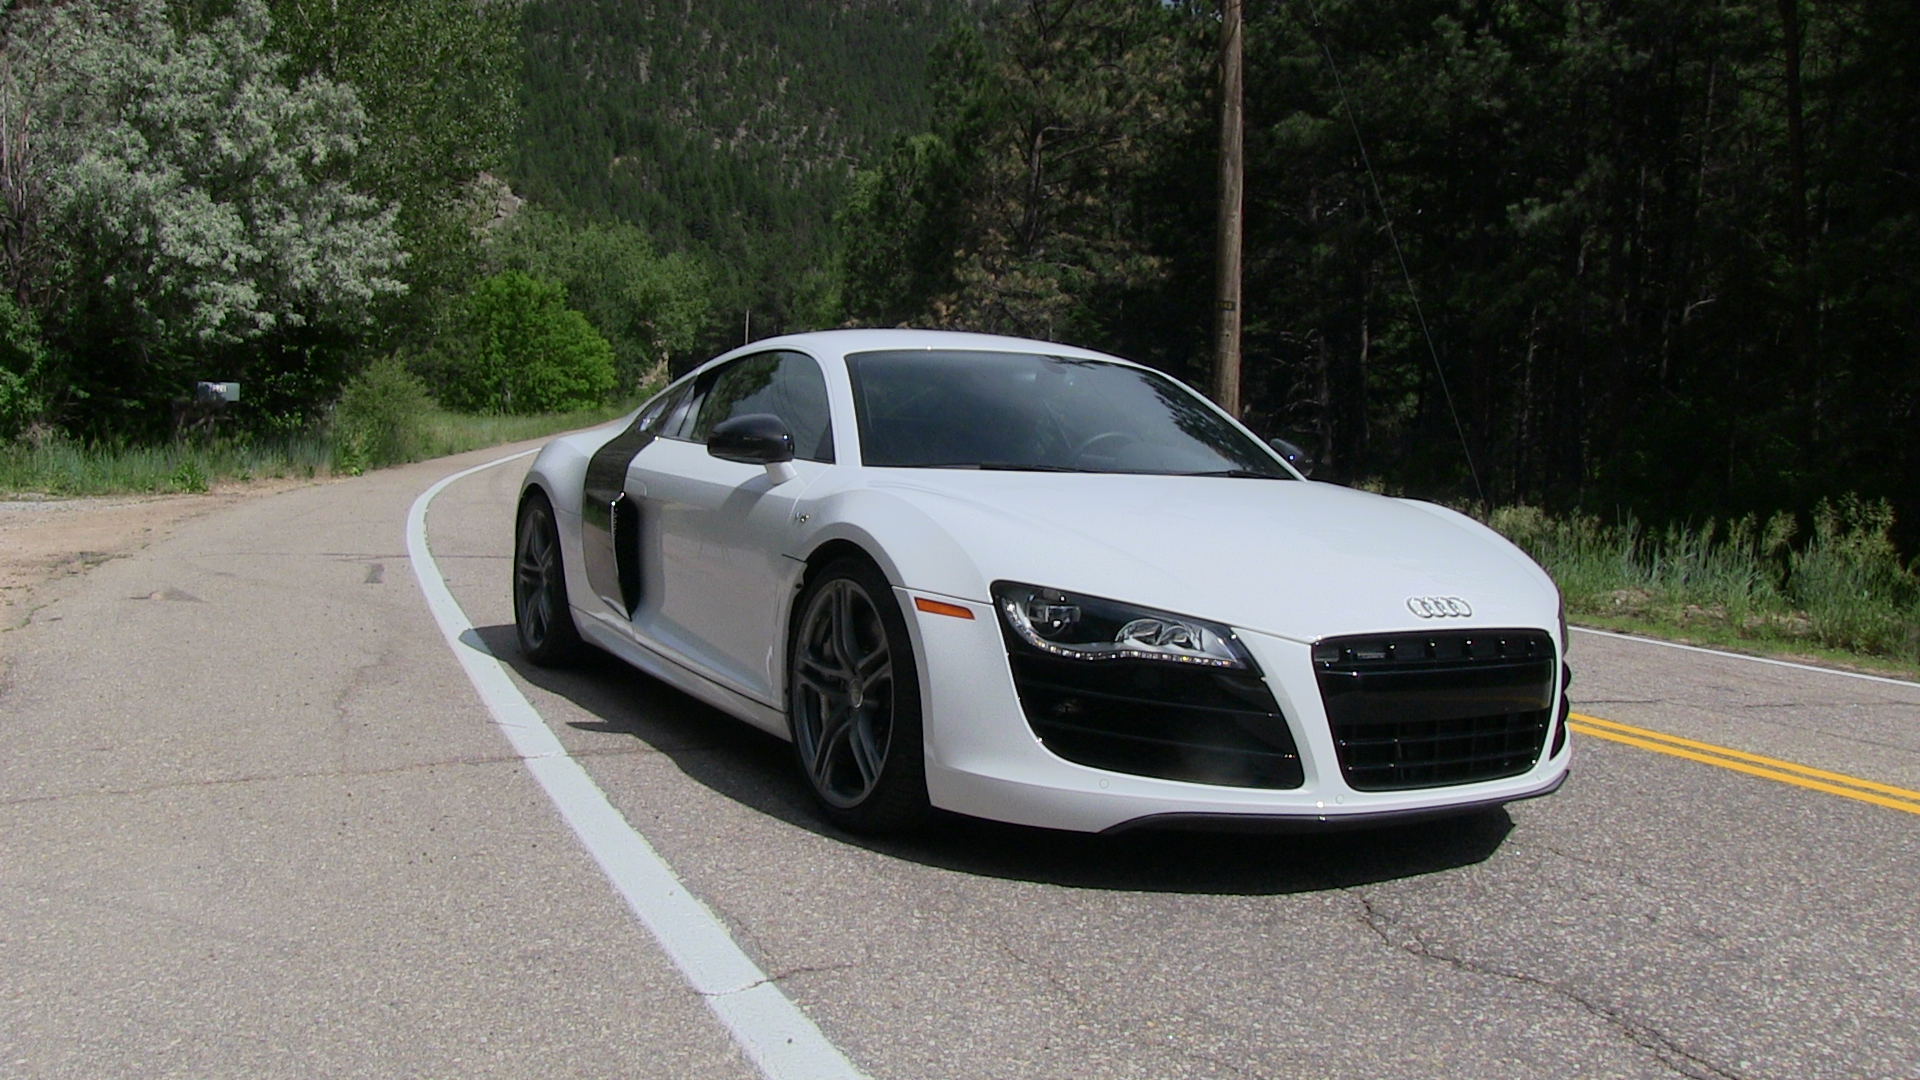 Audi R8 0 60 2018 2019 New Car Reviews by WittsEndCandy